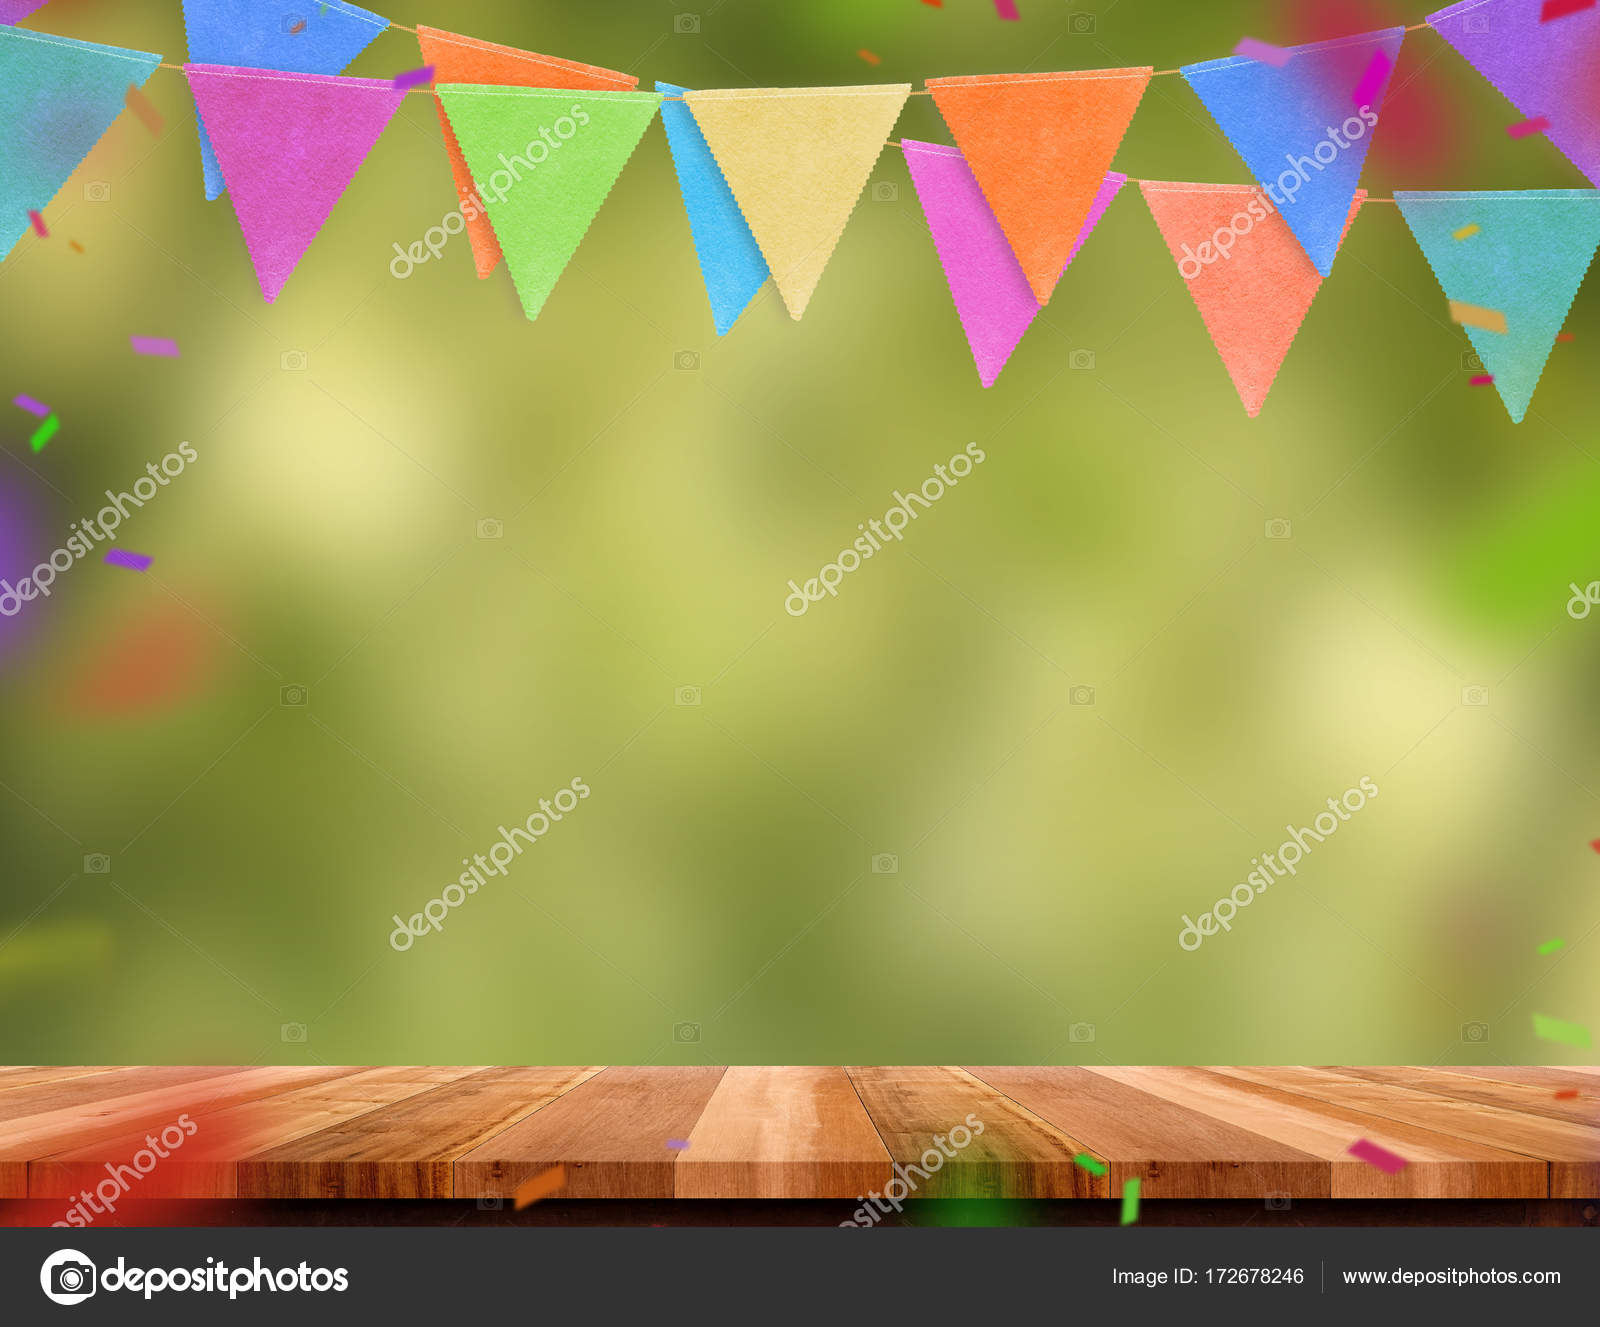 colorful flag banner and confetti on wood table with blur green